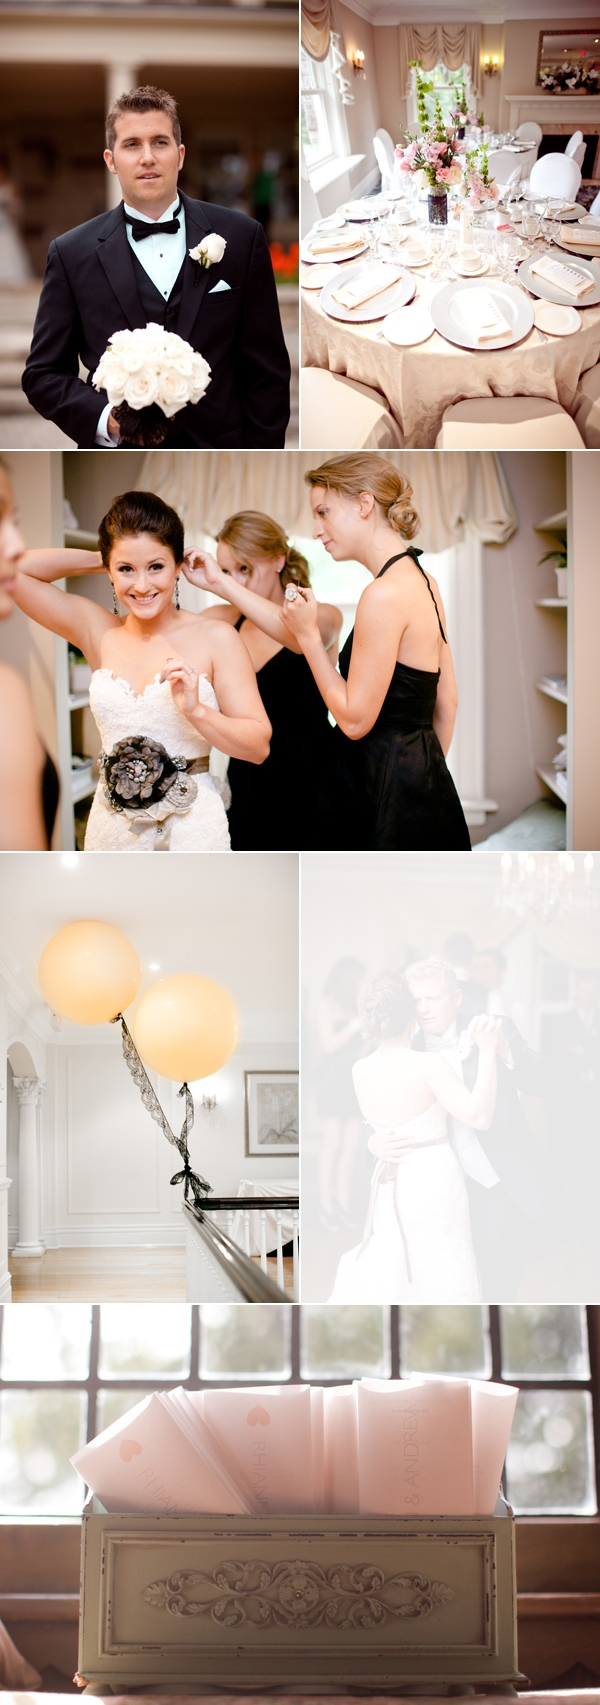 groom holding bouquet;  reception tables; bridesmaids helping bride get ready; balloons on banister of Mansion; personalized cards